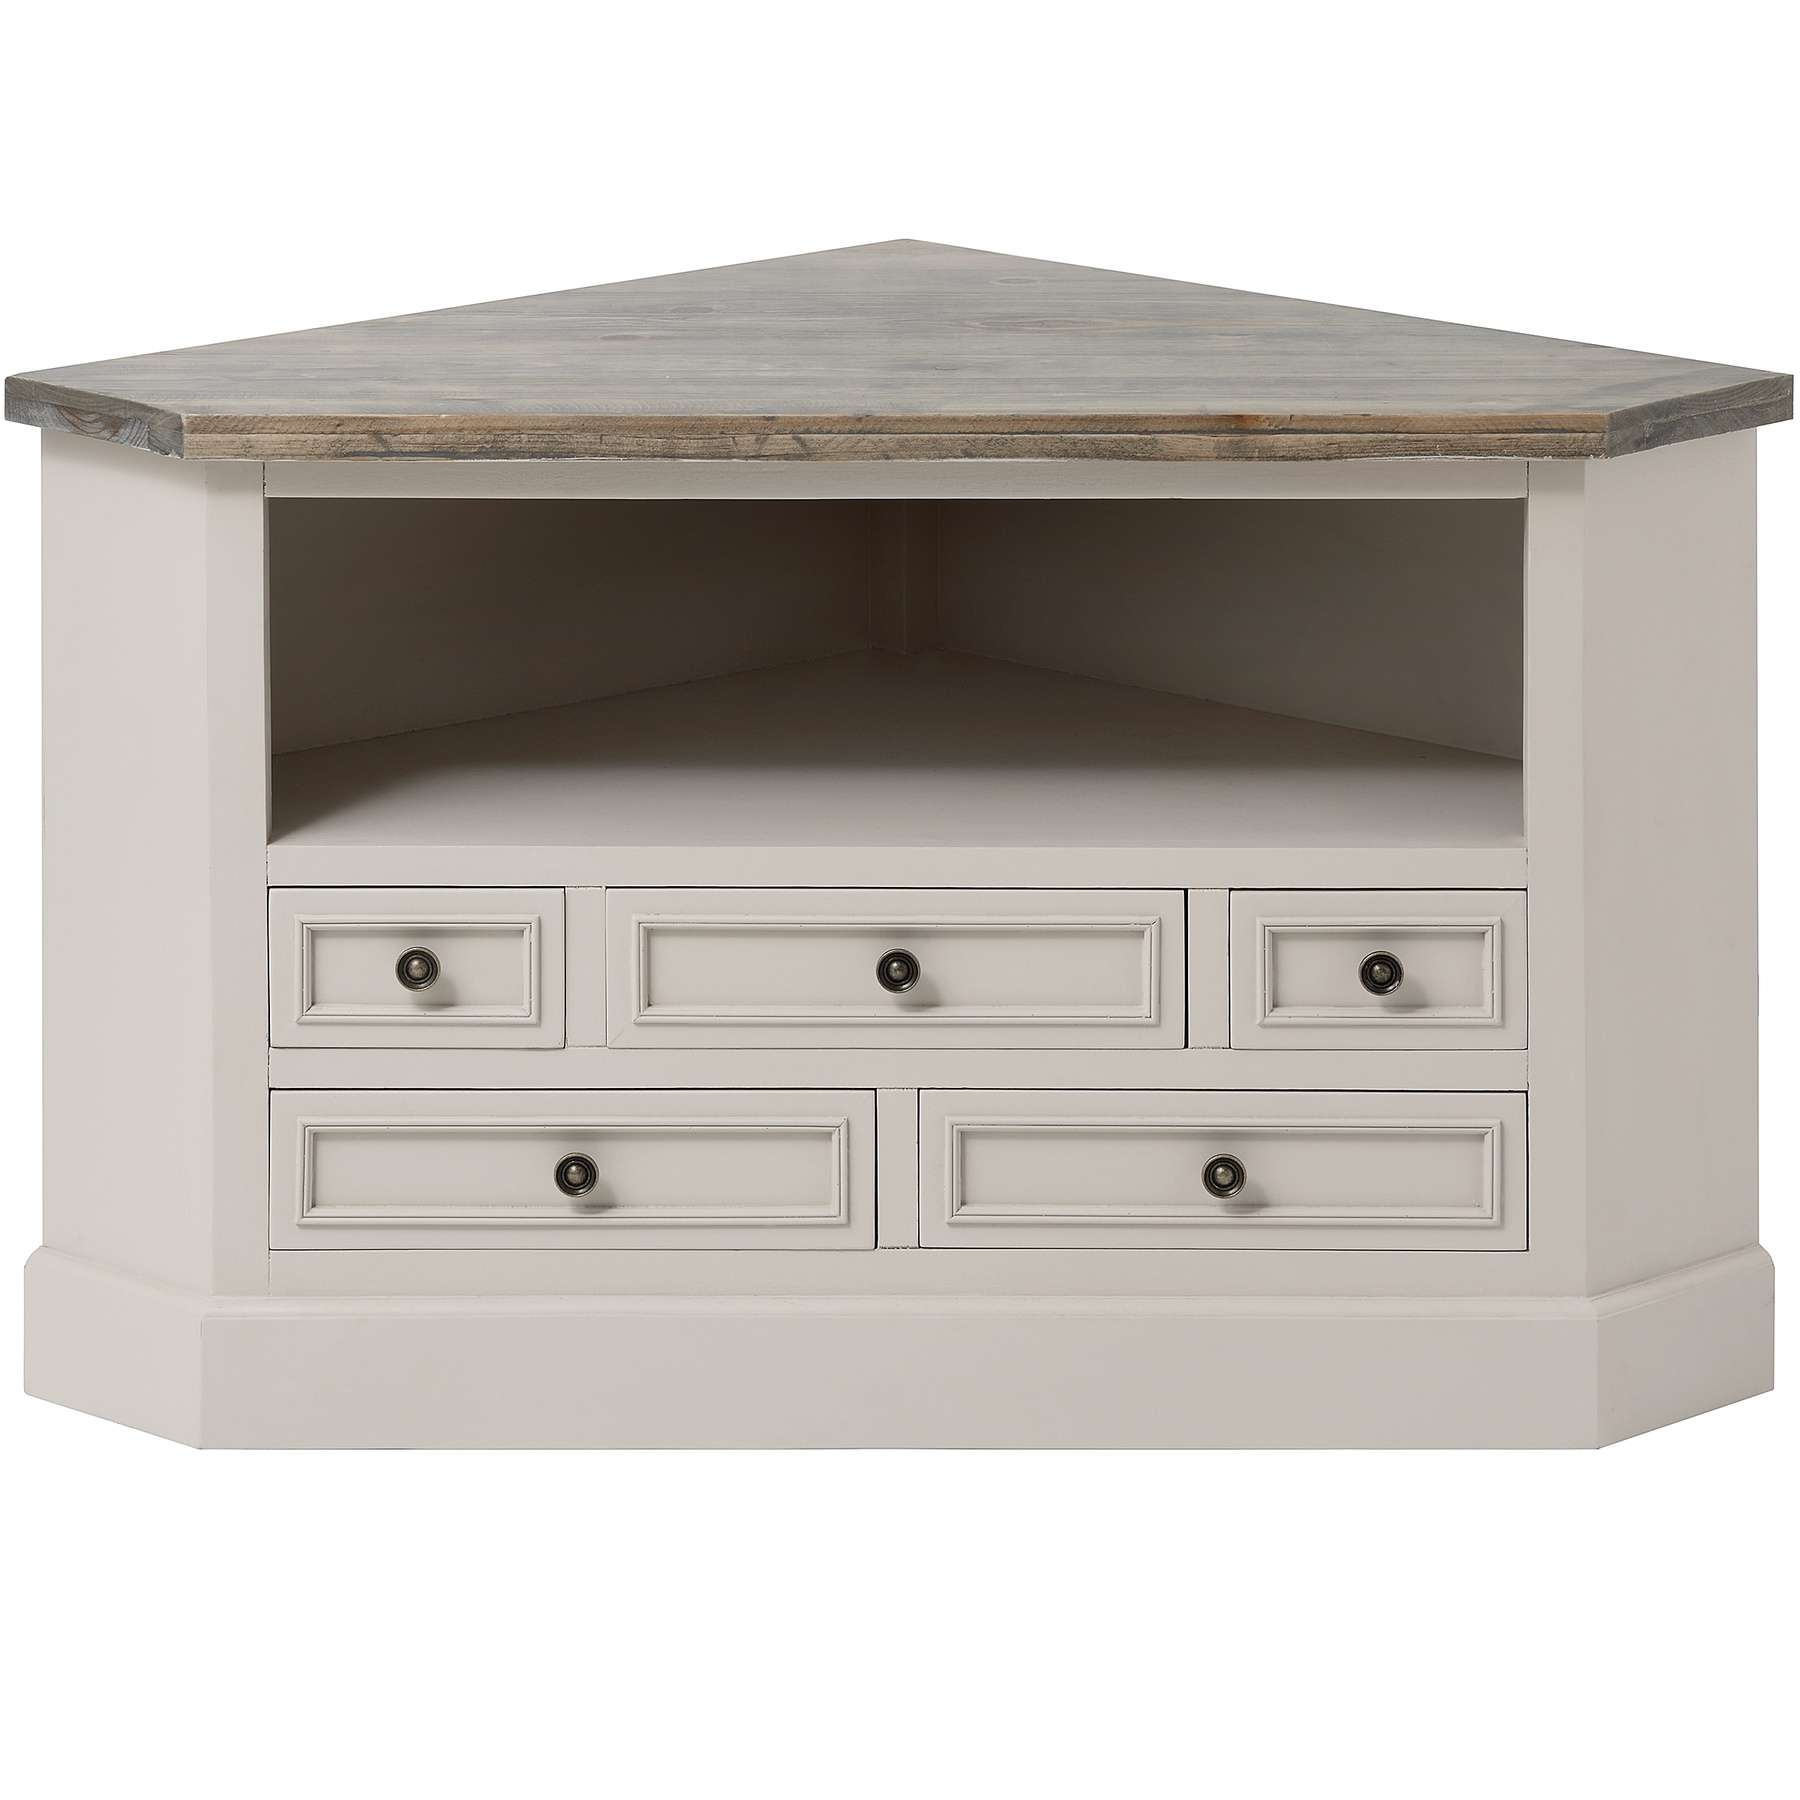 The Studley Collection Corner Tv Unit | From Baytree Interiors With White Corner Tv Cabinets (View 3 of 20)